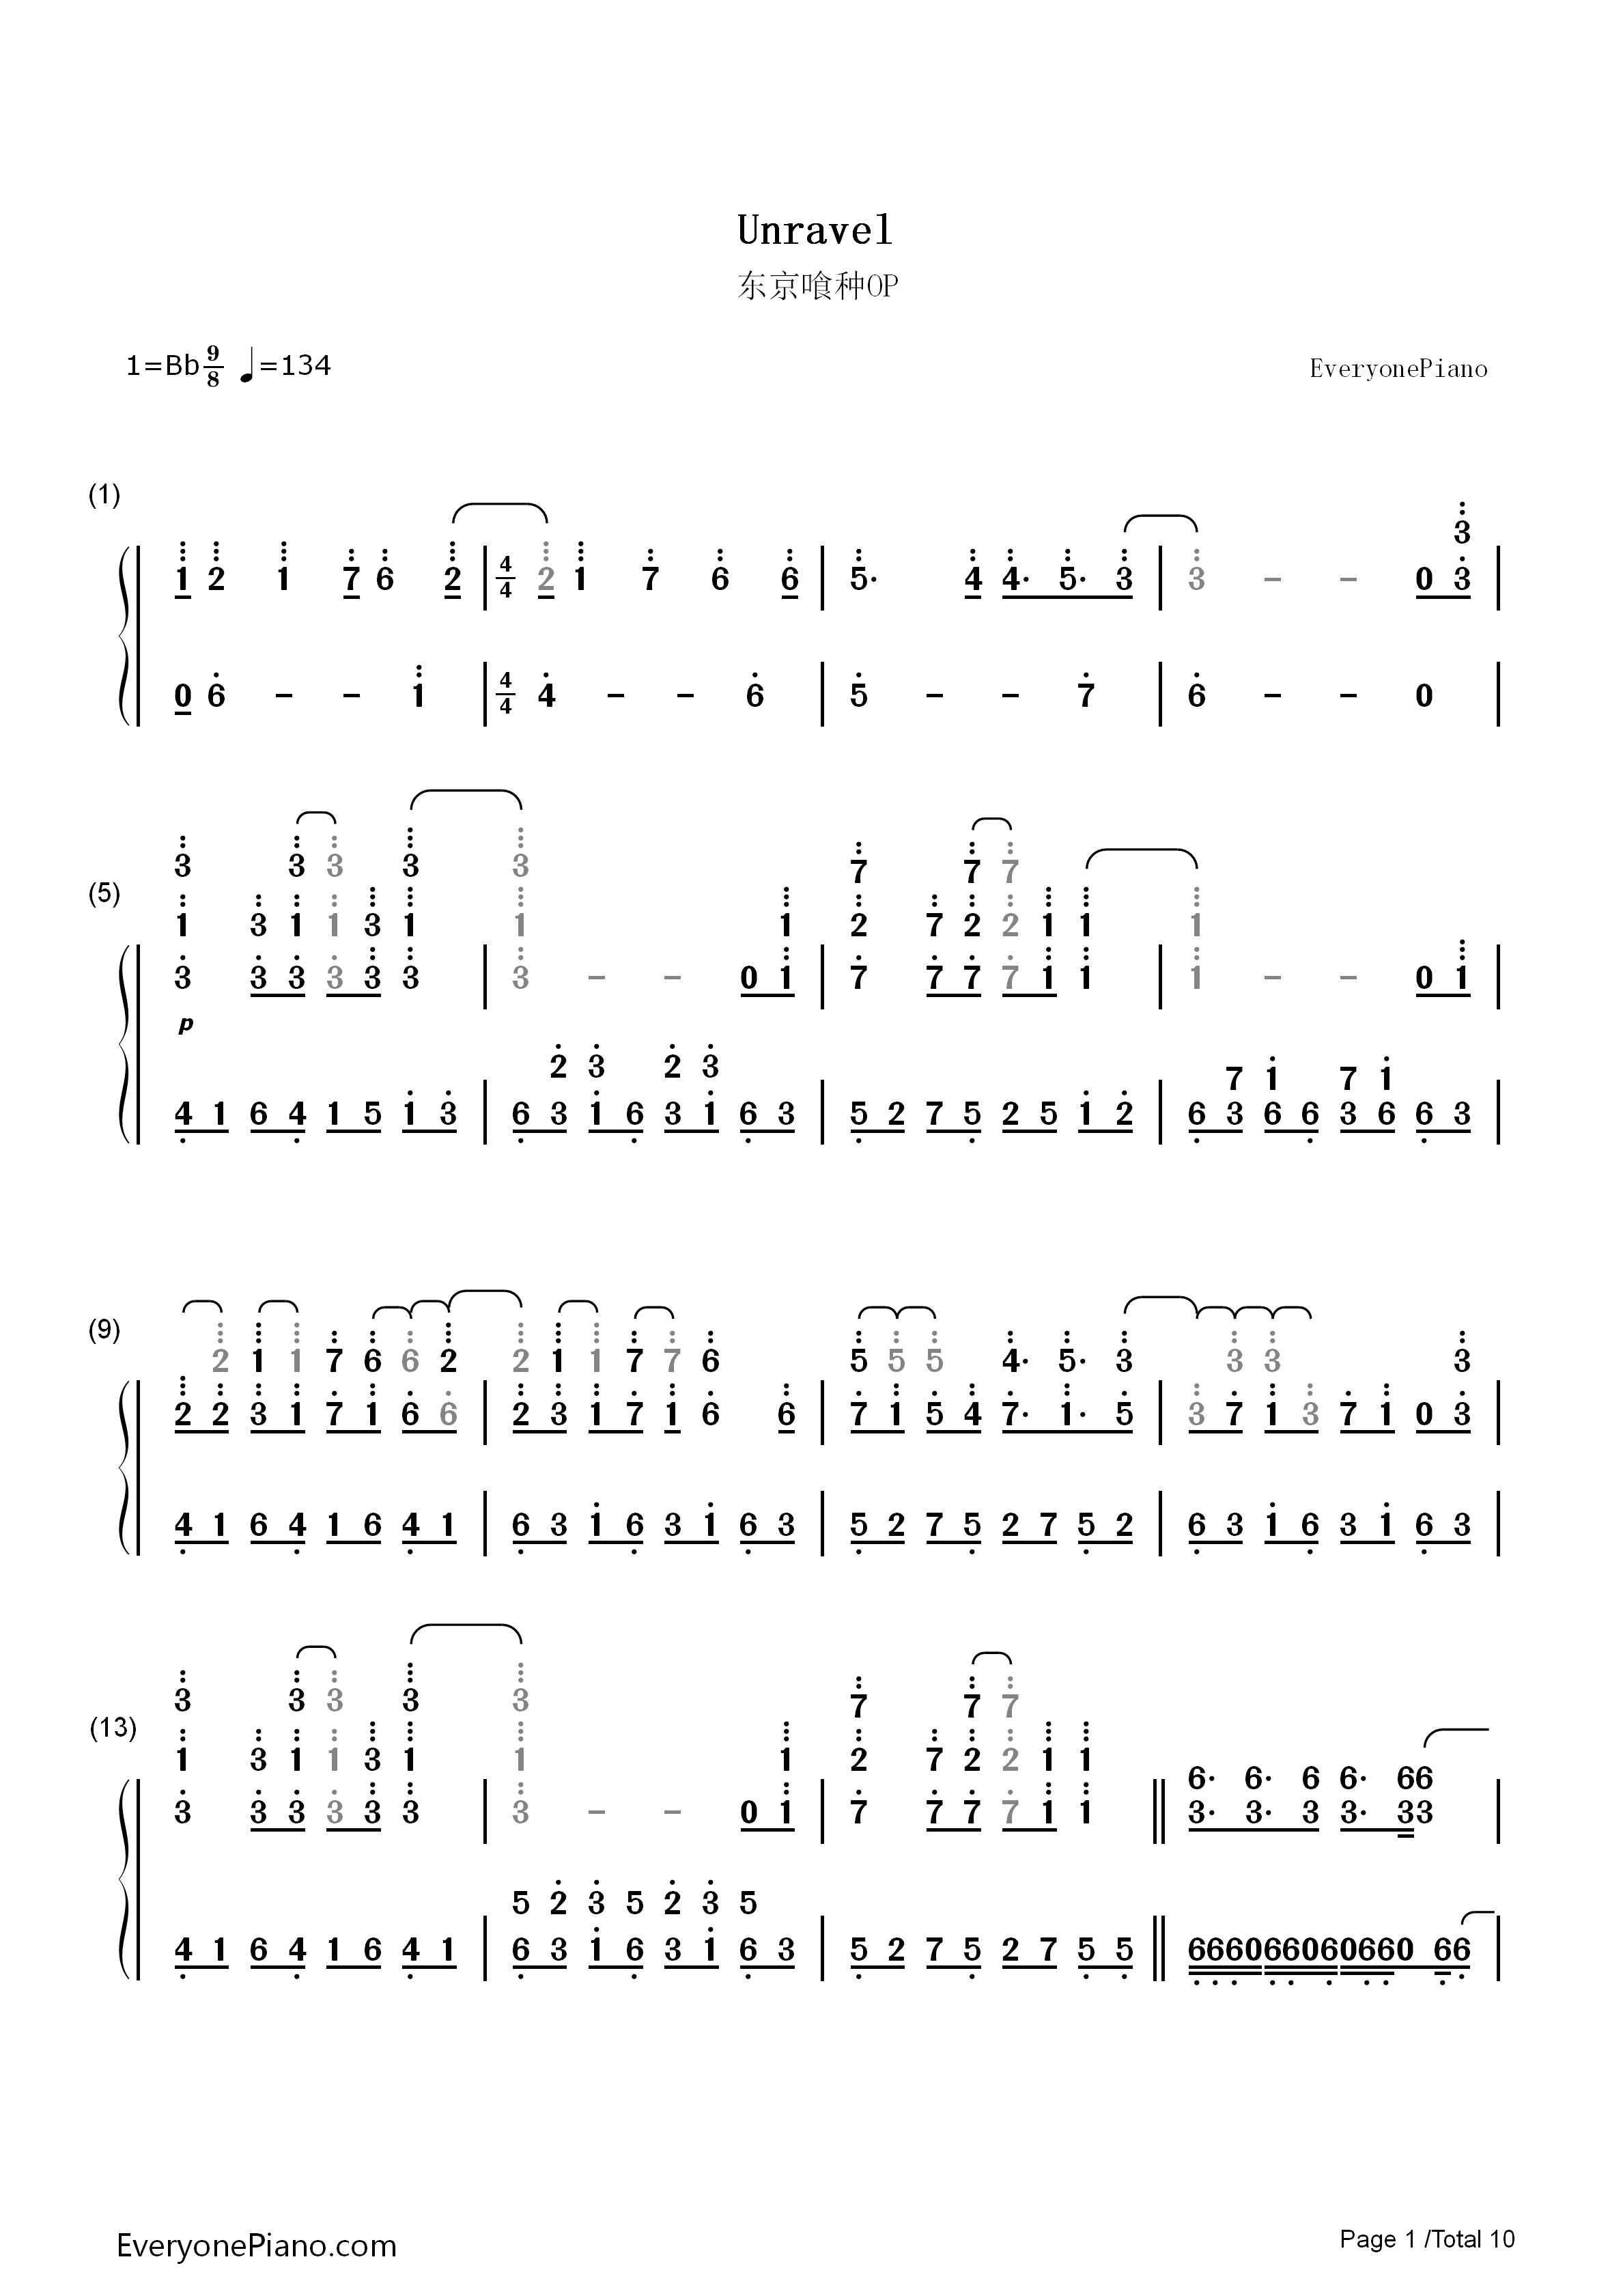 Unravel-Tokyo Ghoul Theme Numbered Musical Notation Preview 1-Free Piano Sheet Music u0026 Piano Chords